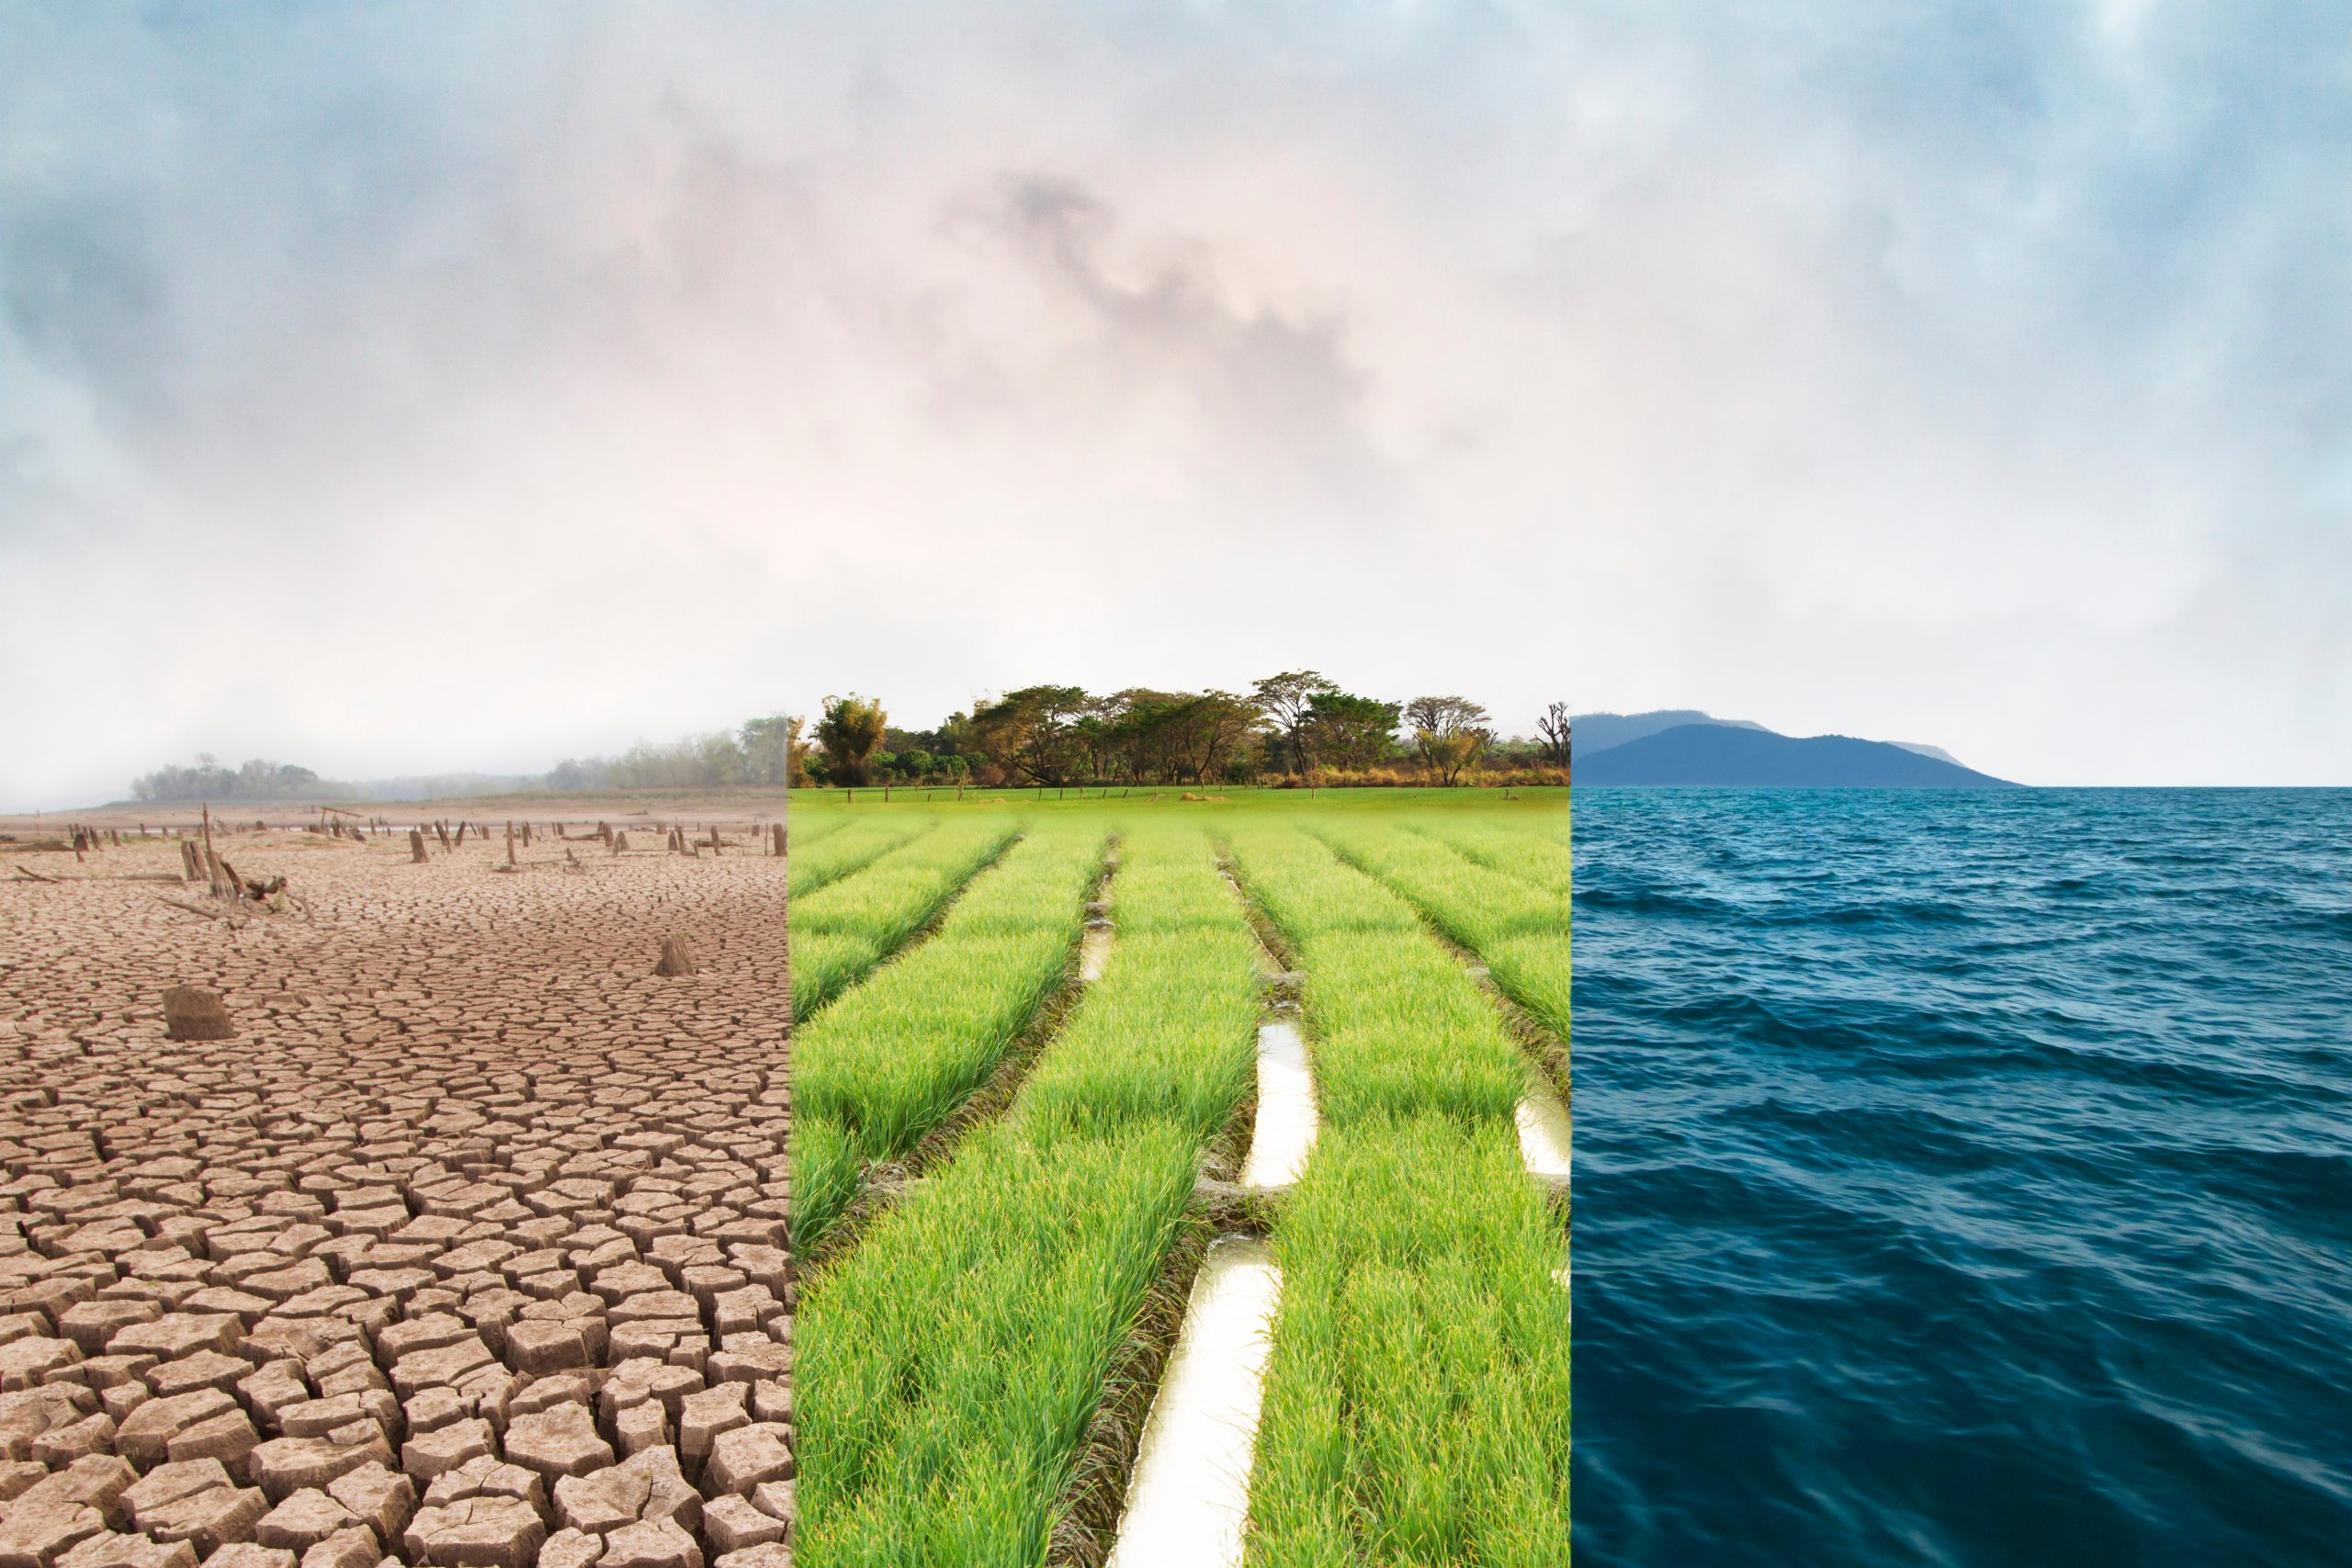 Climate Change image